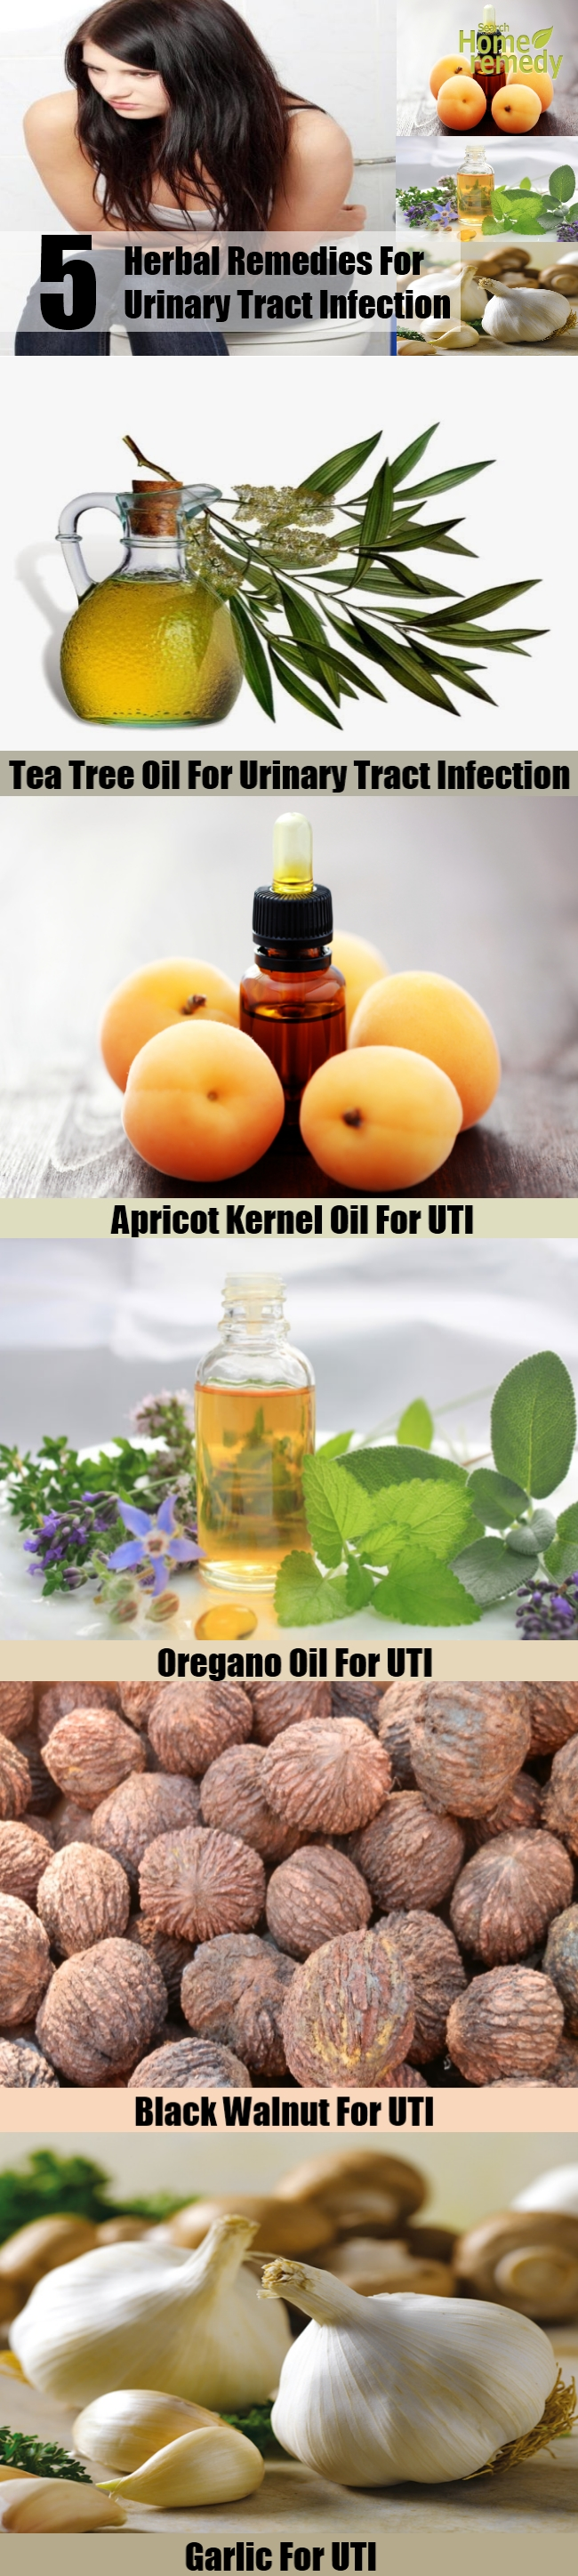 Top 5 Herbal Remedies For Urinary Tract Infection